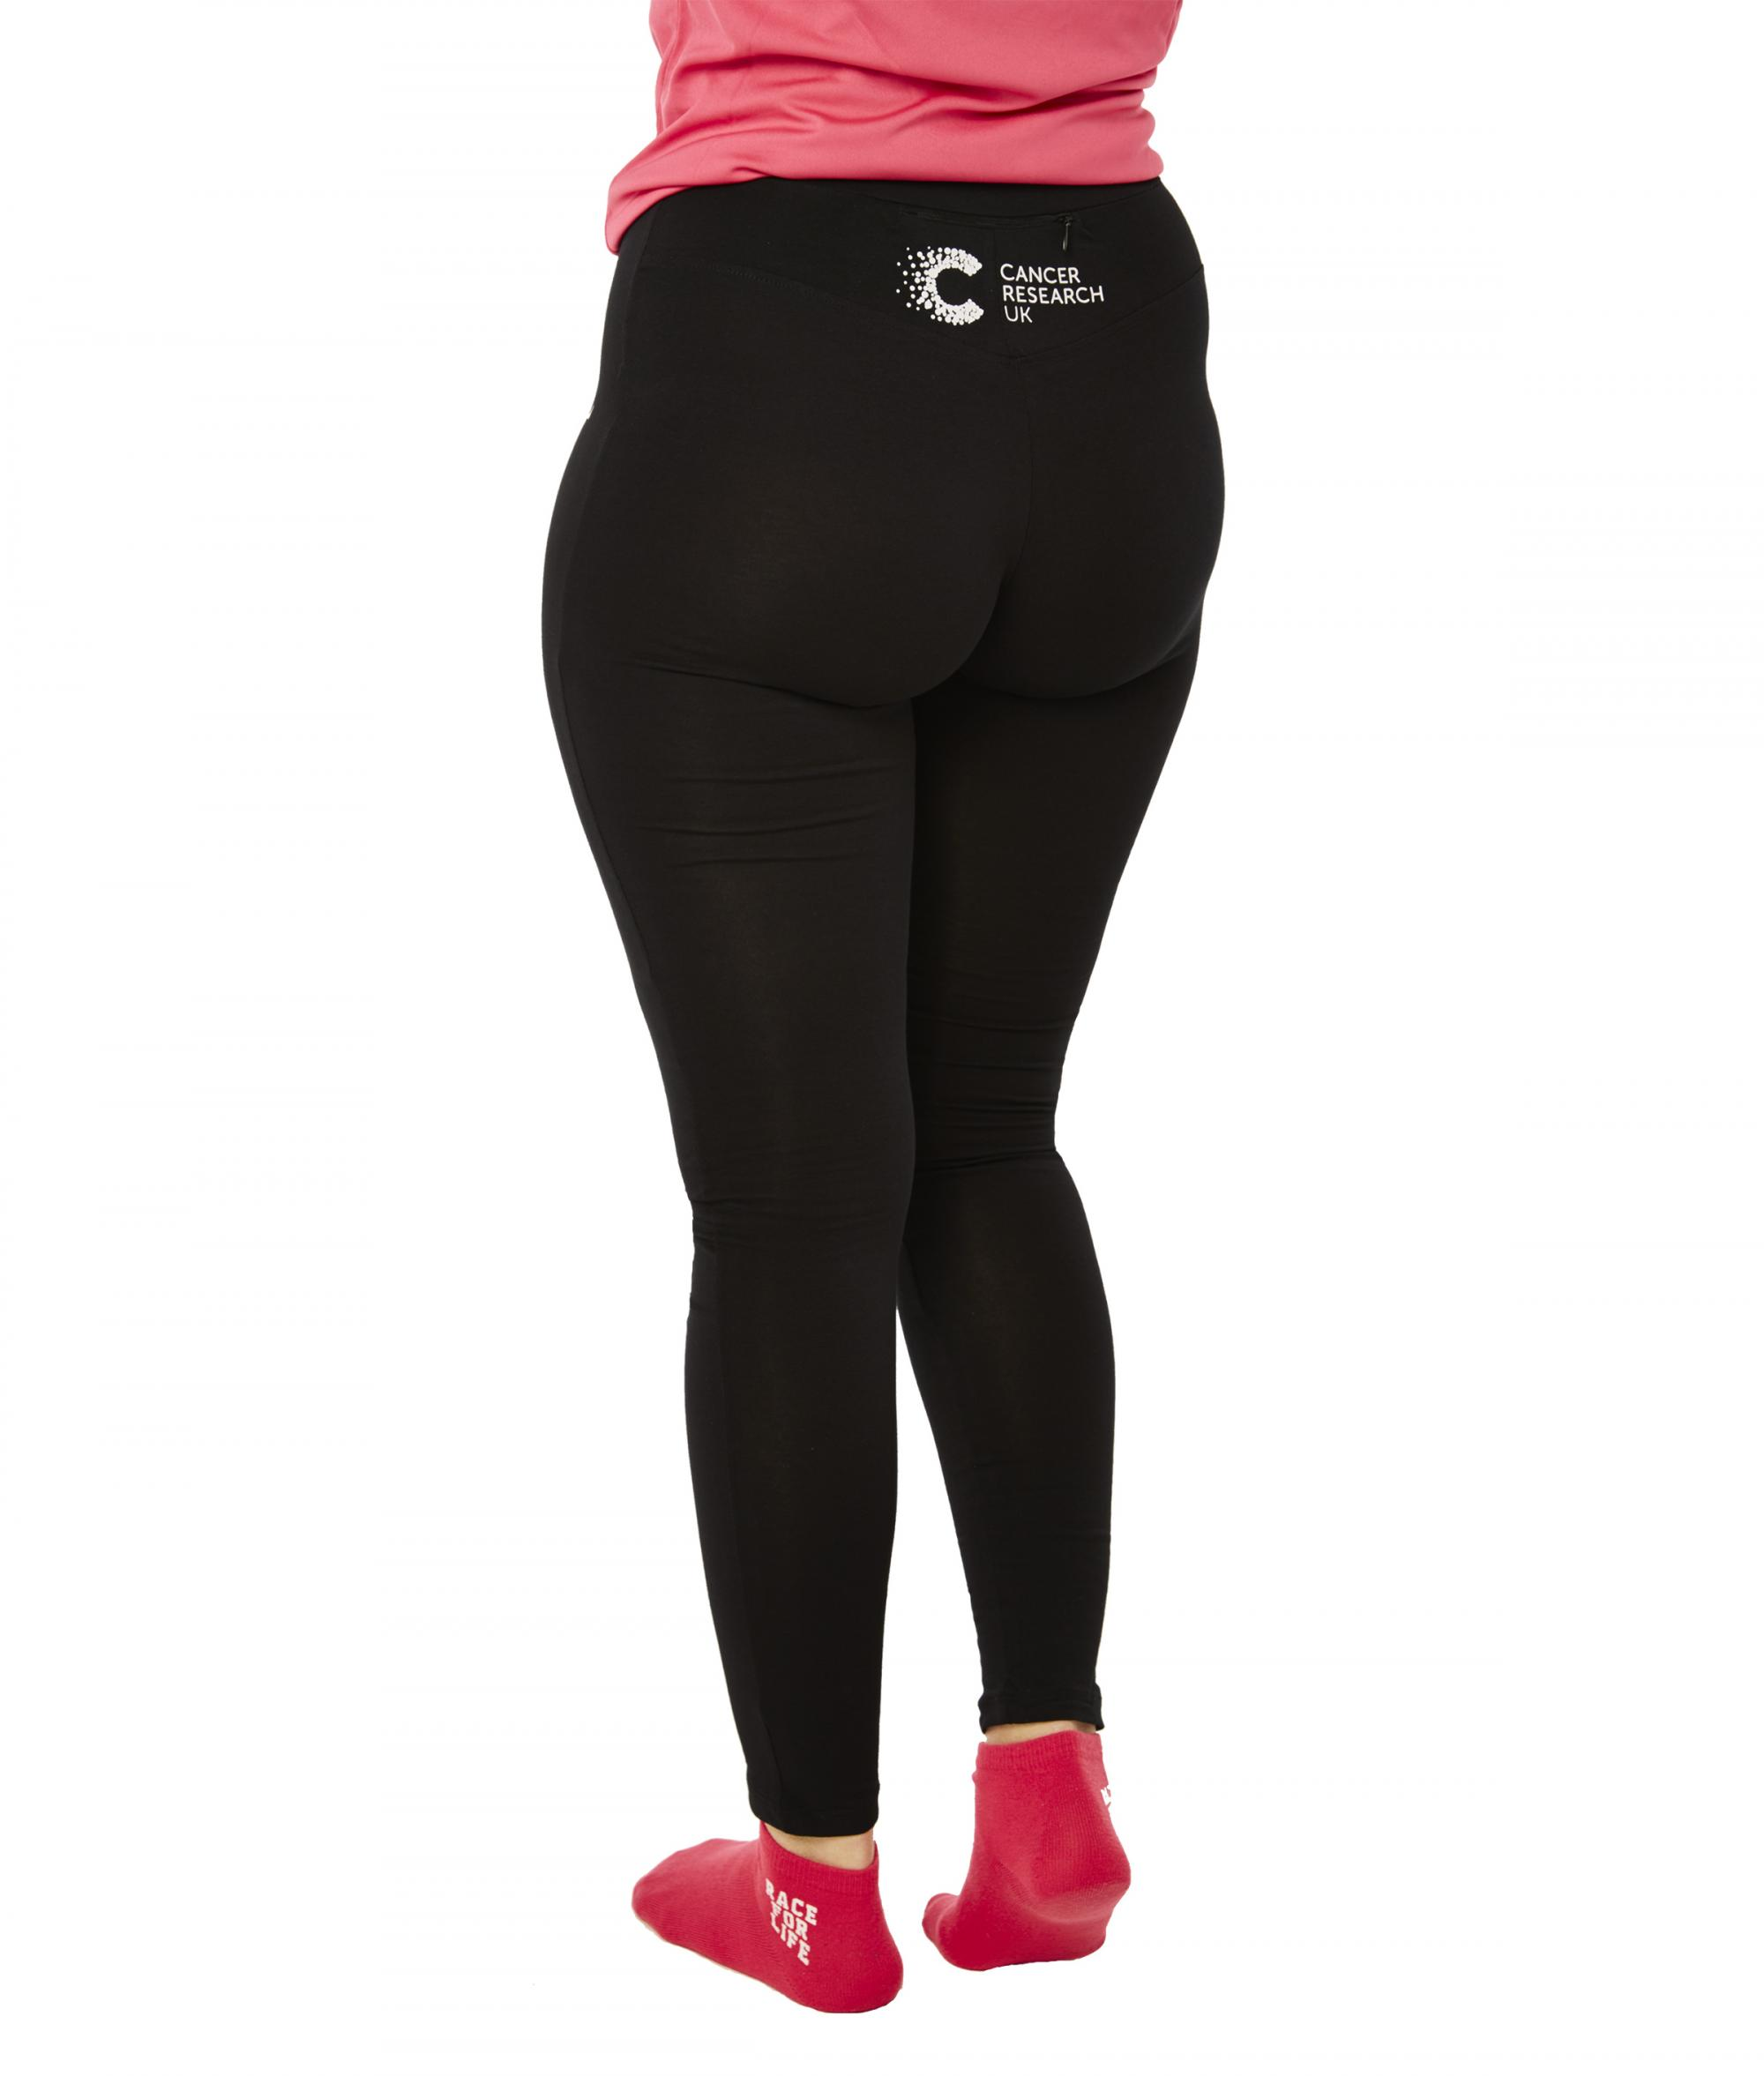 For Life Race For Life Leggings Cancer Research Uk Online Shop